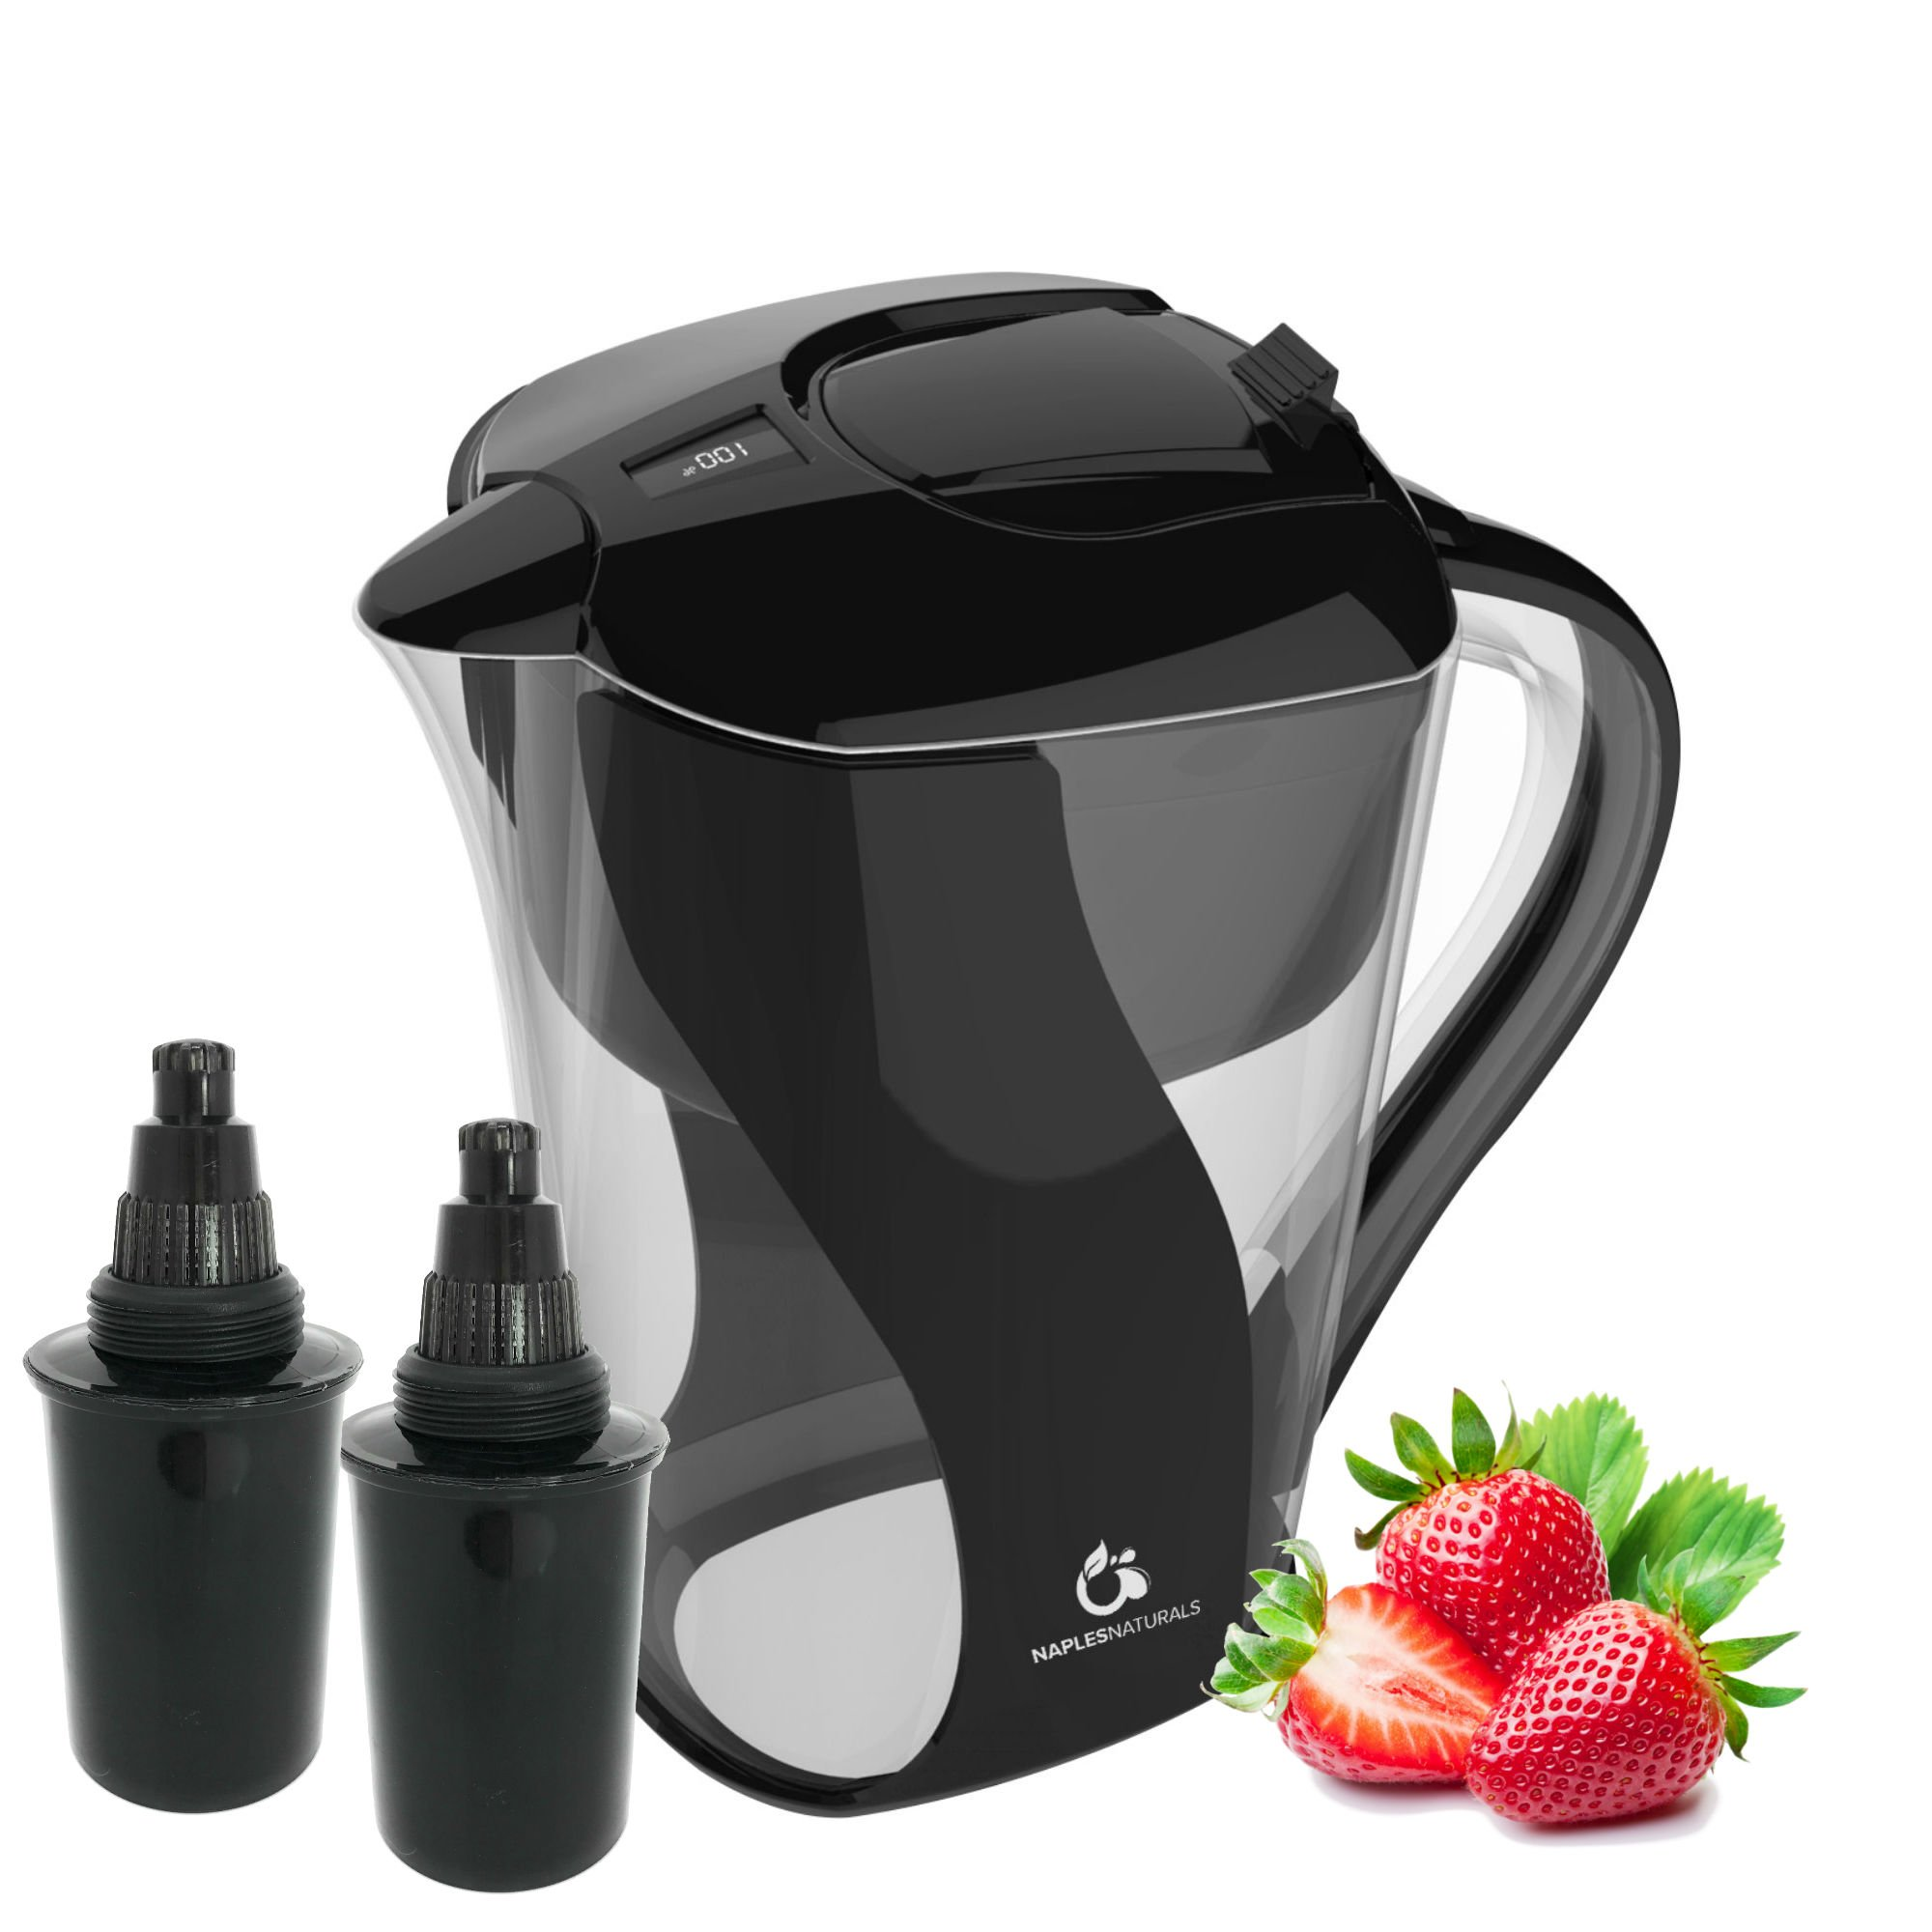 Alkaline Water Pitcher with Two 6-Stage Carbon Water Filters - Removes Chlorine and Contaminants plus Increases pH, by Naples Naturals (Slimline) (Black)